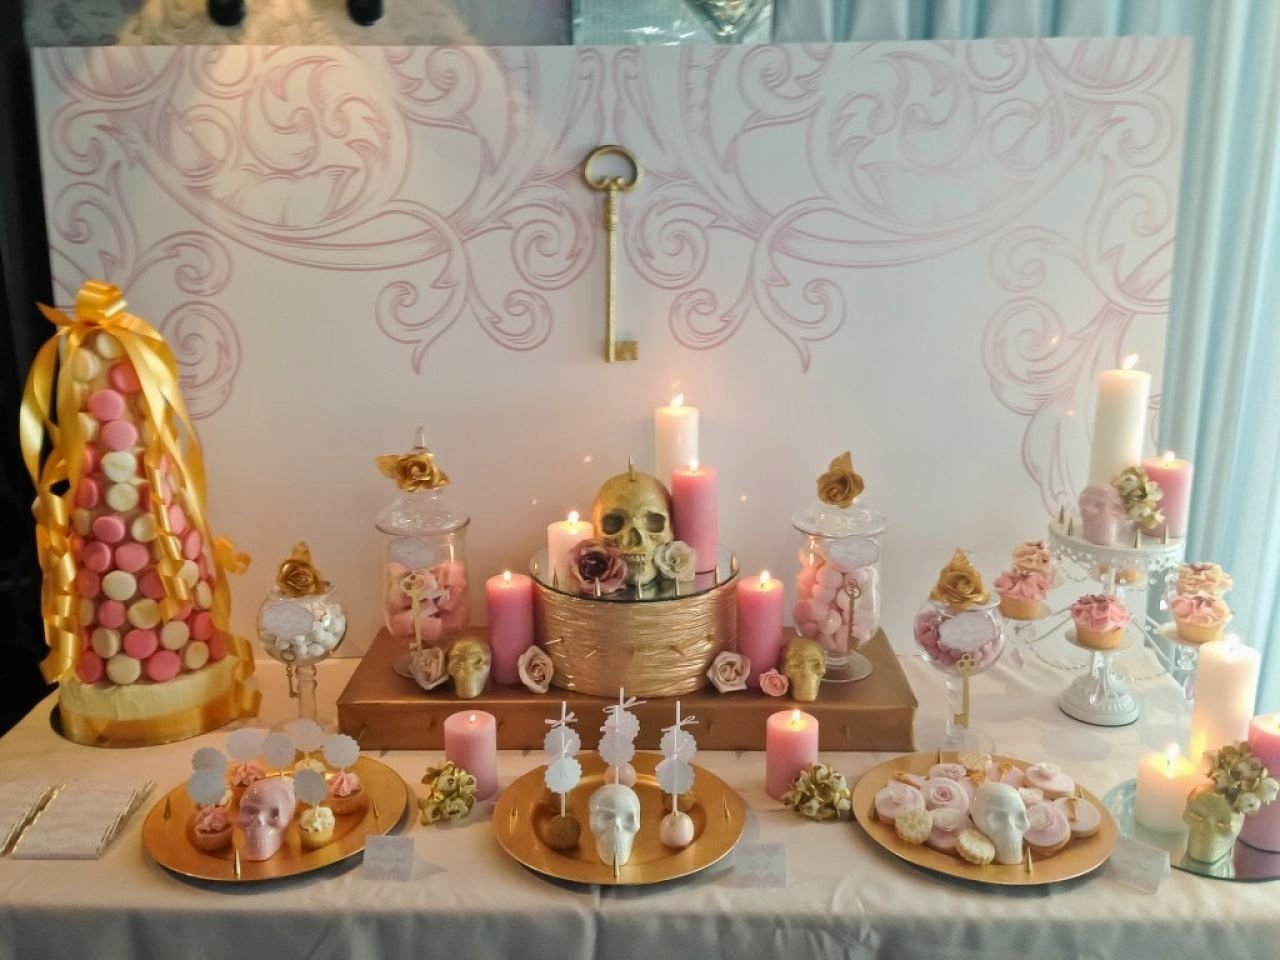 10 Amazing Party Ideas For 21St Birthday 21st birthday party themes for her decorating of party 1 2021